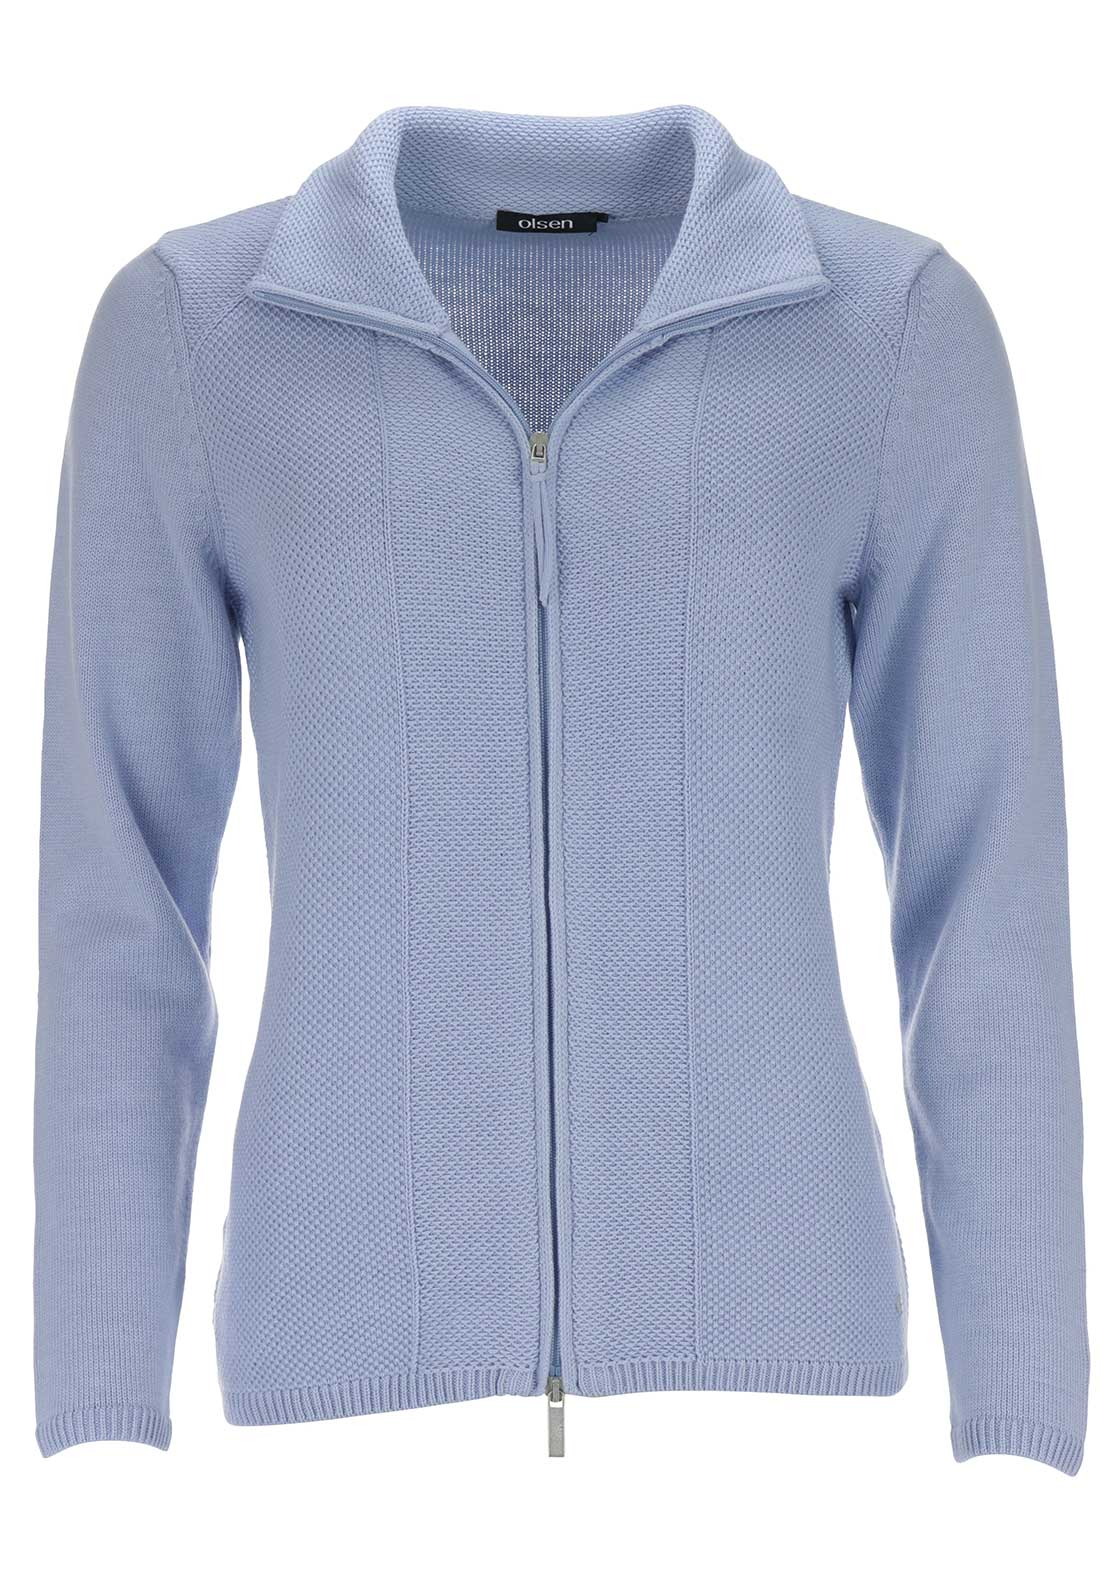 Olsen Textured Knit Cardigan, Pale Blue